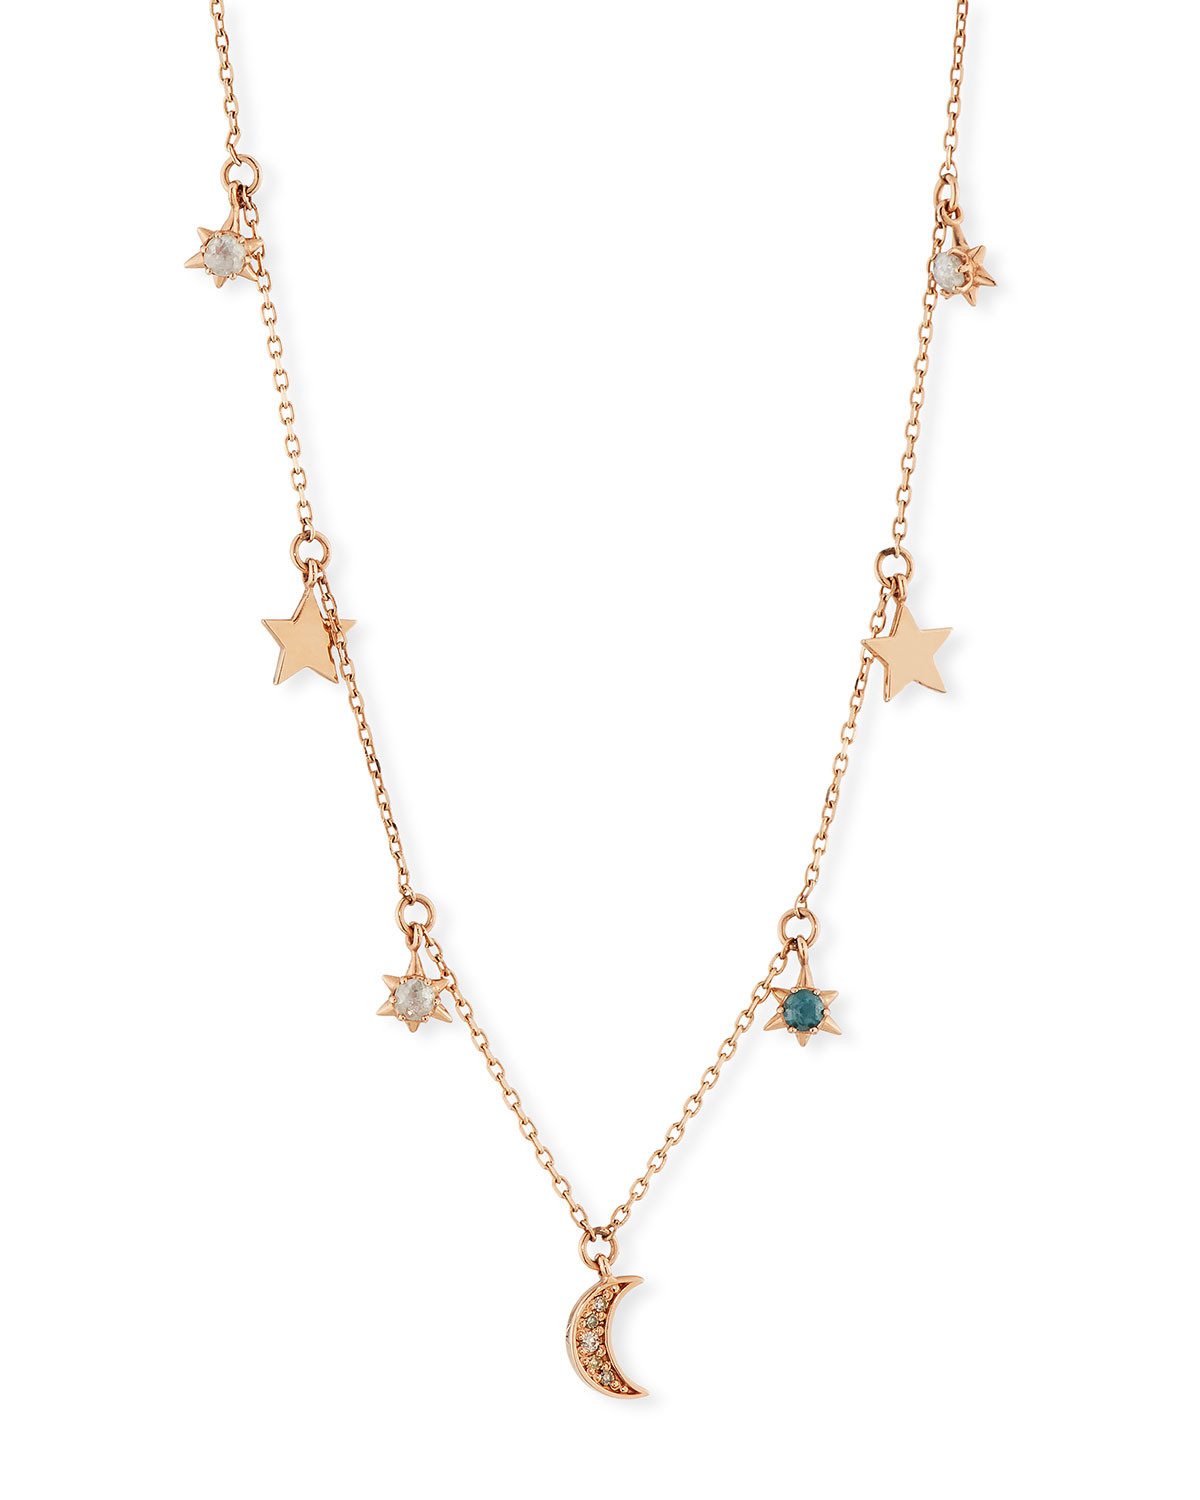 Stevie Wren 14k Celestial Diamond Charm Necklace